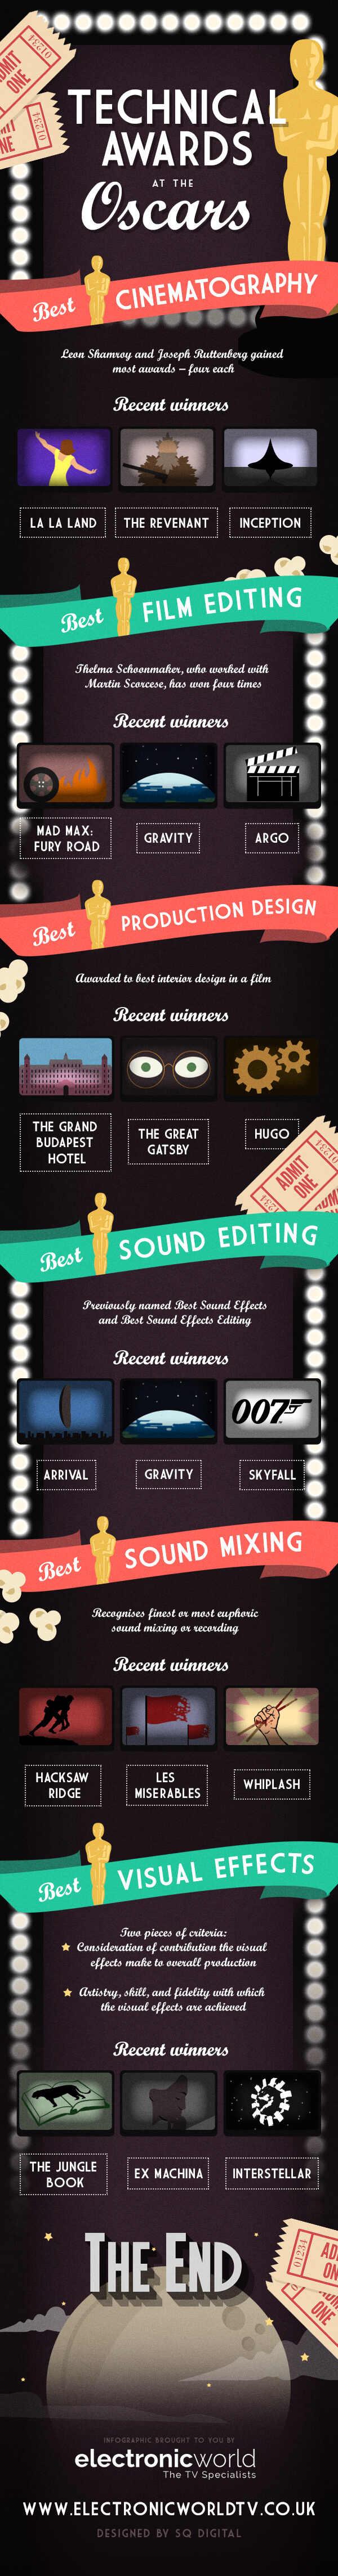 technical-awards-at-the-oscars-infographic-plaza